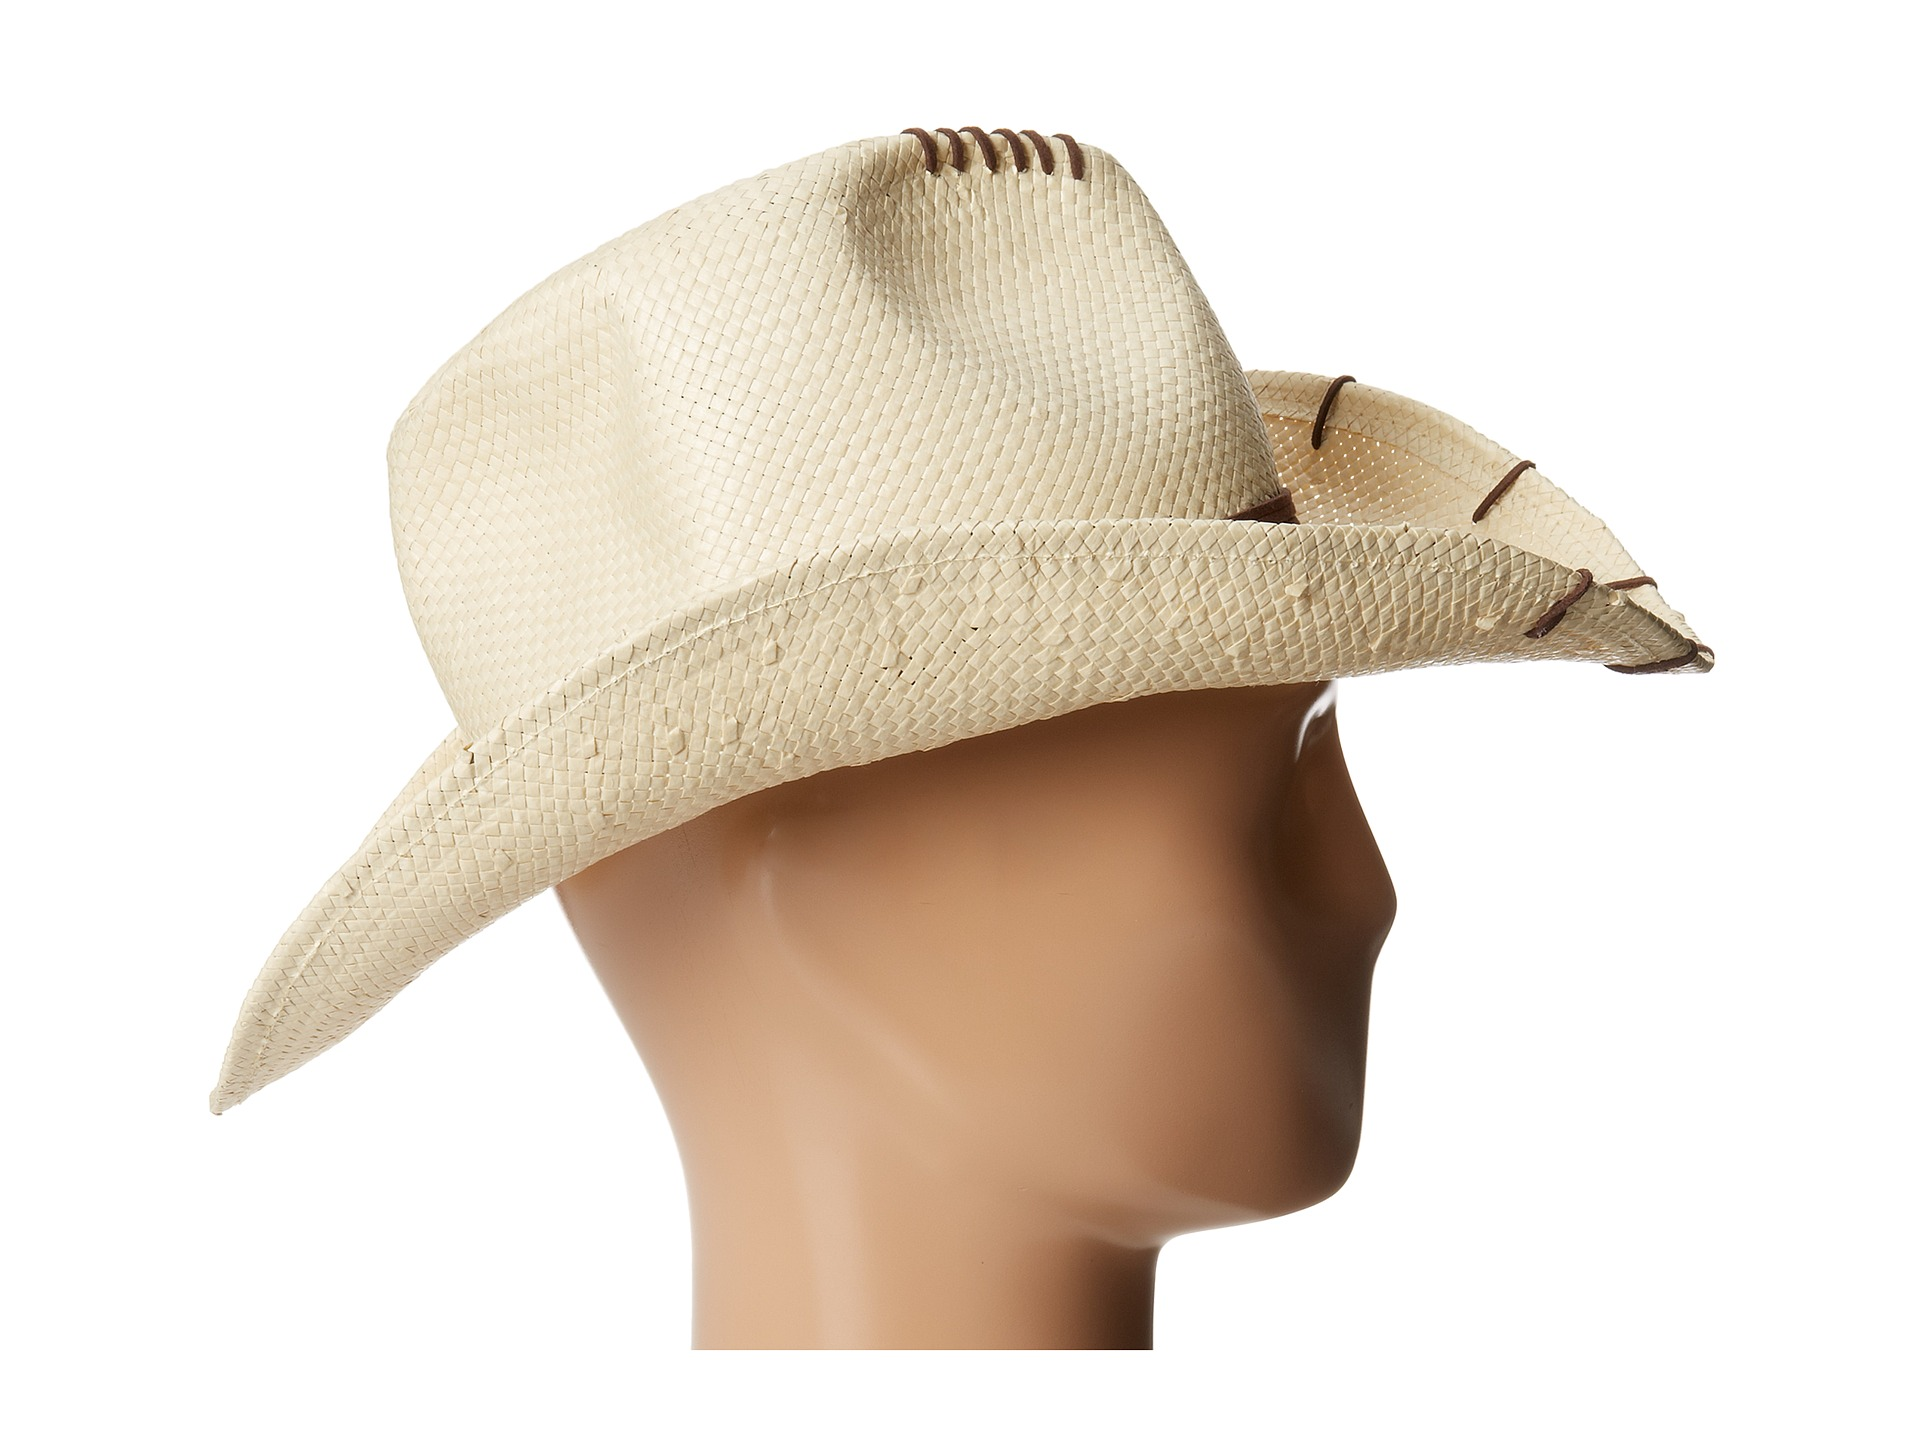 black cowboy hat side view